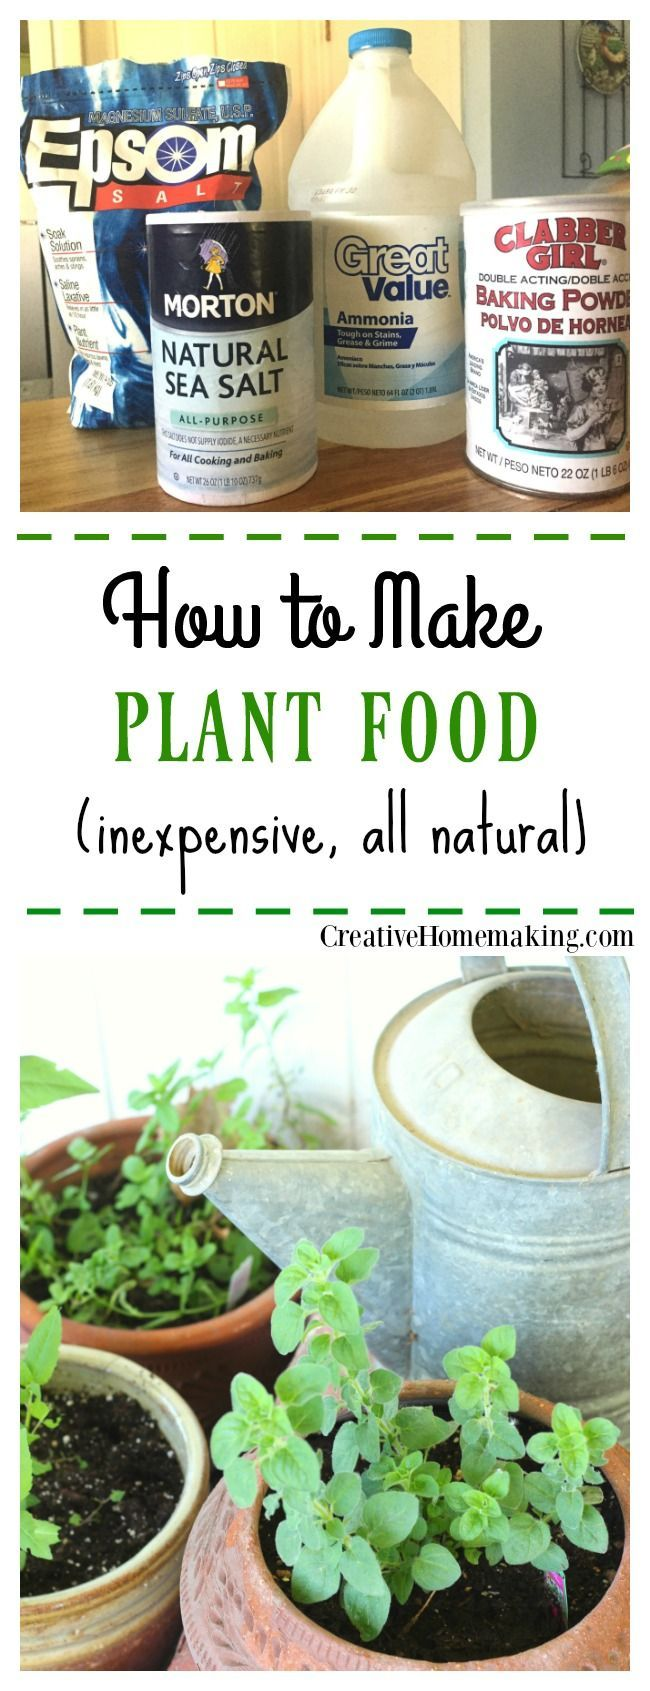 How to Make Homemade Plant Food Looking for a way to make your own plant food? Easily make your own inexpensive plant food from these common household products. to Make Homemade Plant Food Looking for a way to make your own plant food? Easily make your own inexpensive plant food from these common household products.Looking for a way to make your own plant food? Easily make your own inexpensive plant food from these common household products.